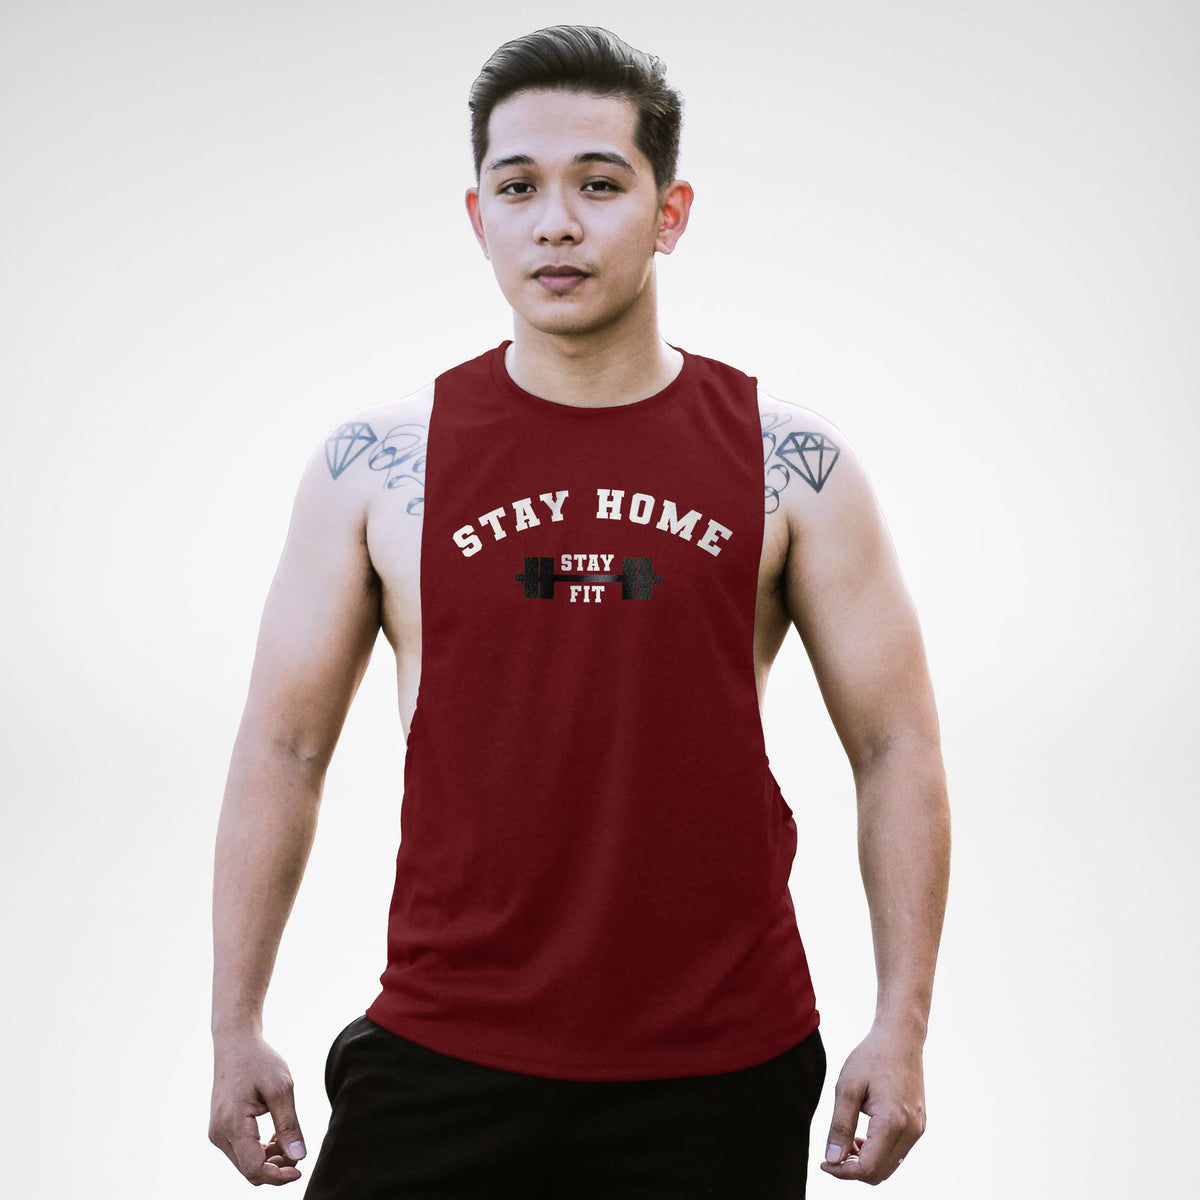 Stay Home Stay Fit Openside Tank Top